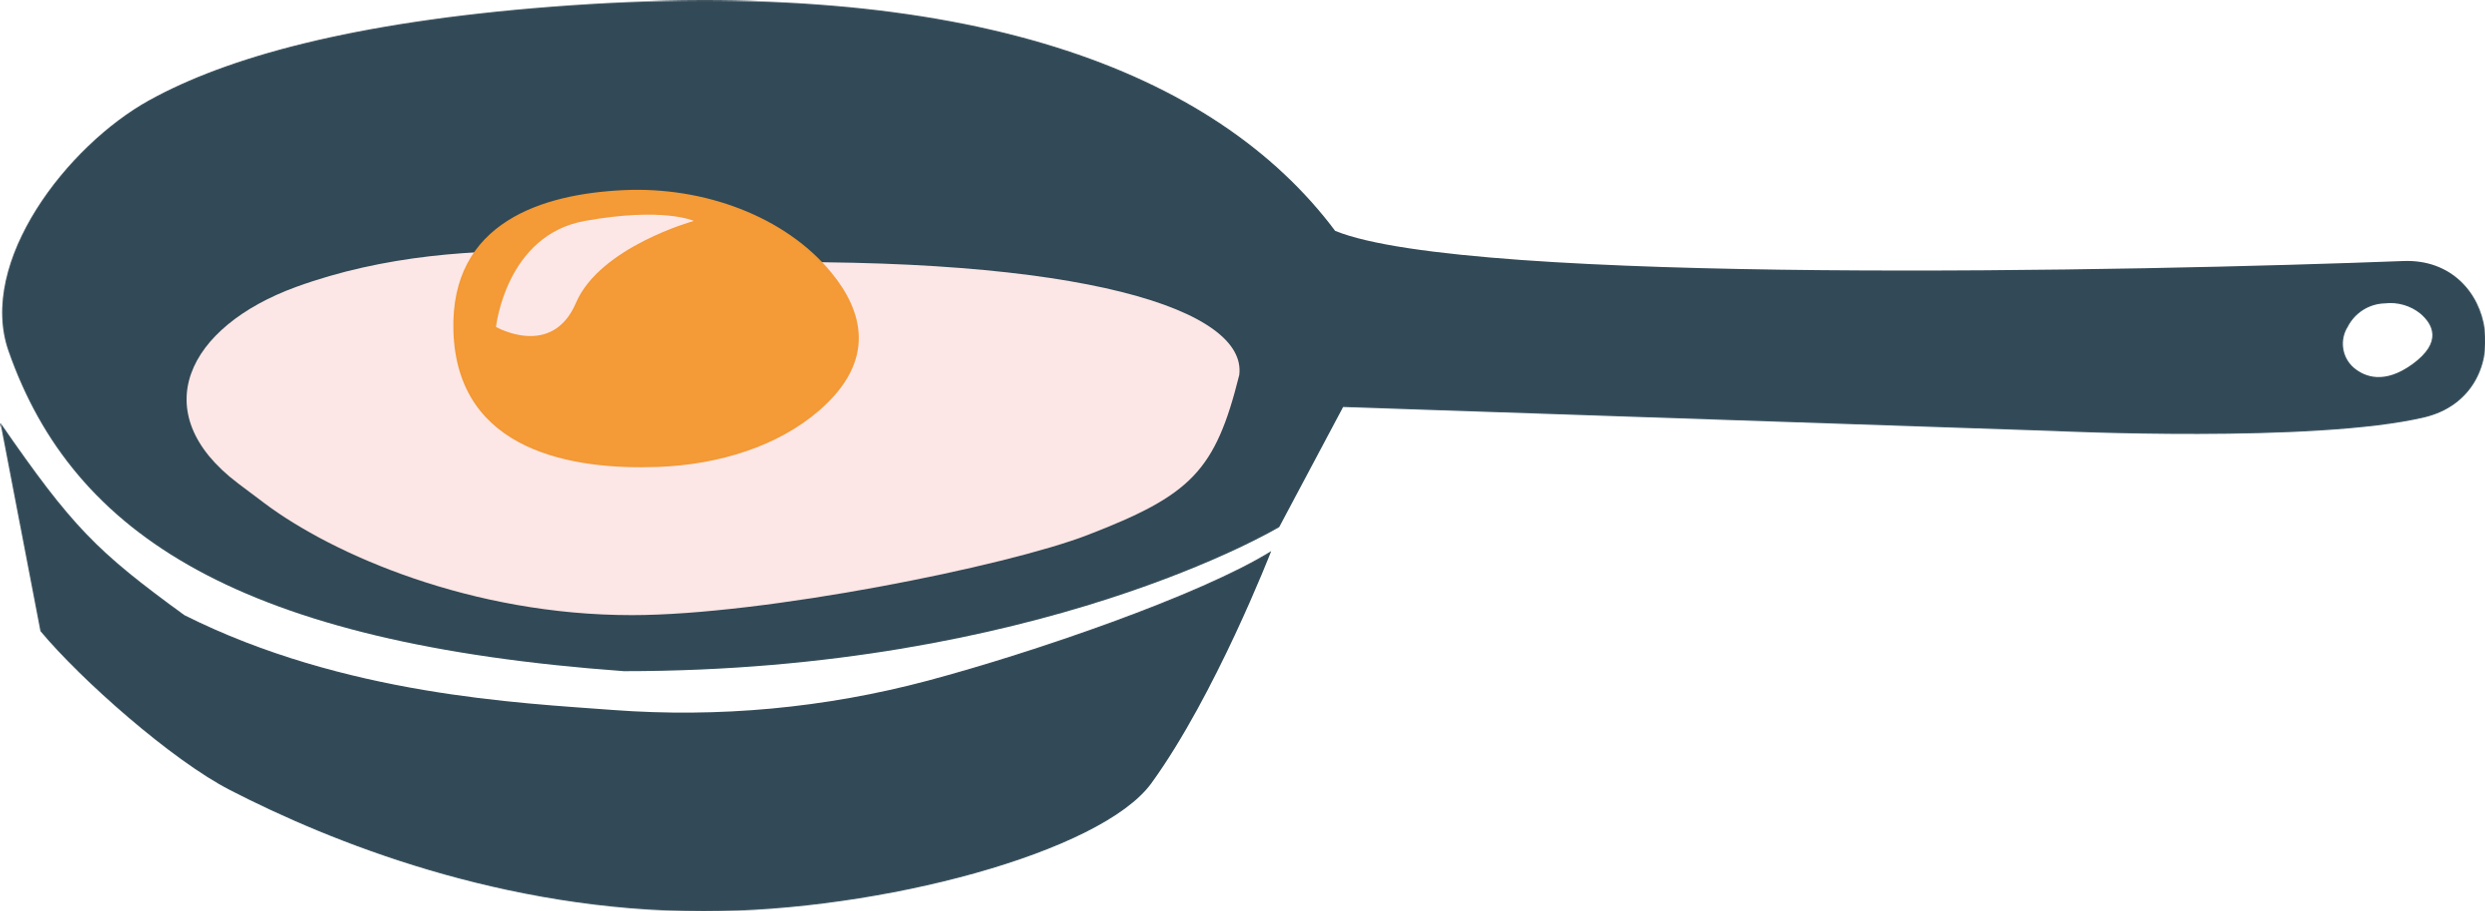 style e frying pan with fried eggs images in PNG and SVG | Icons8 Illustrations